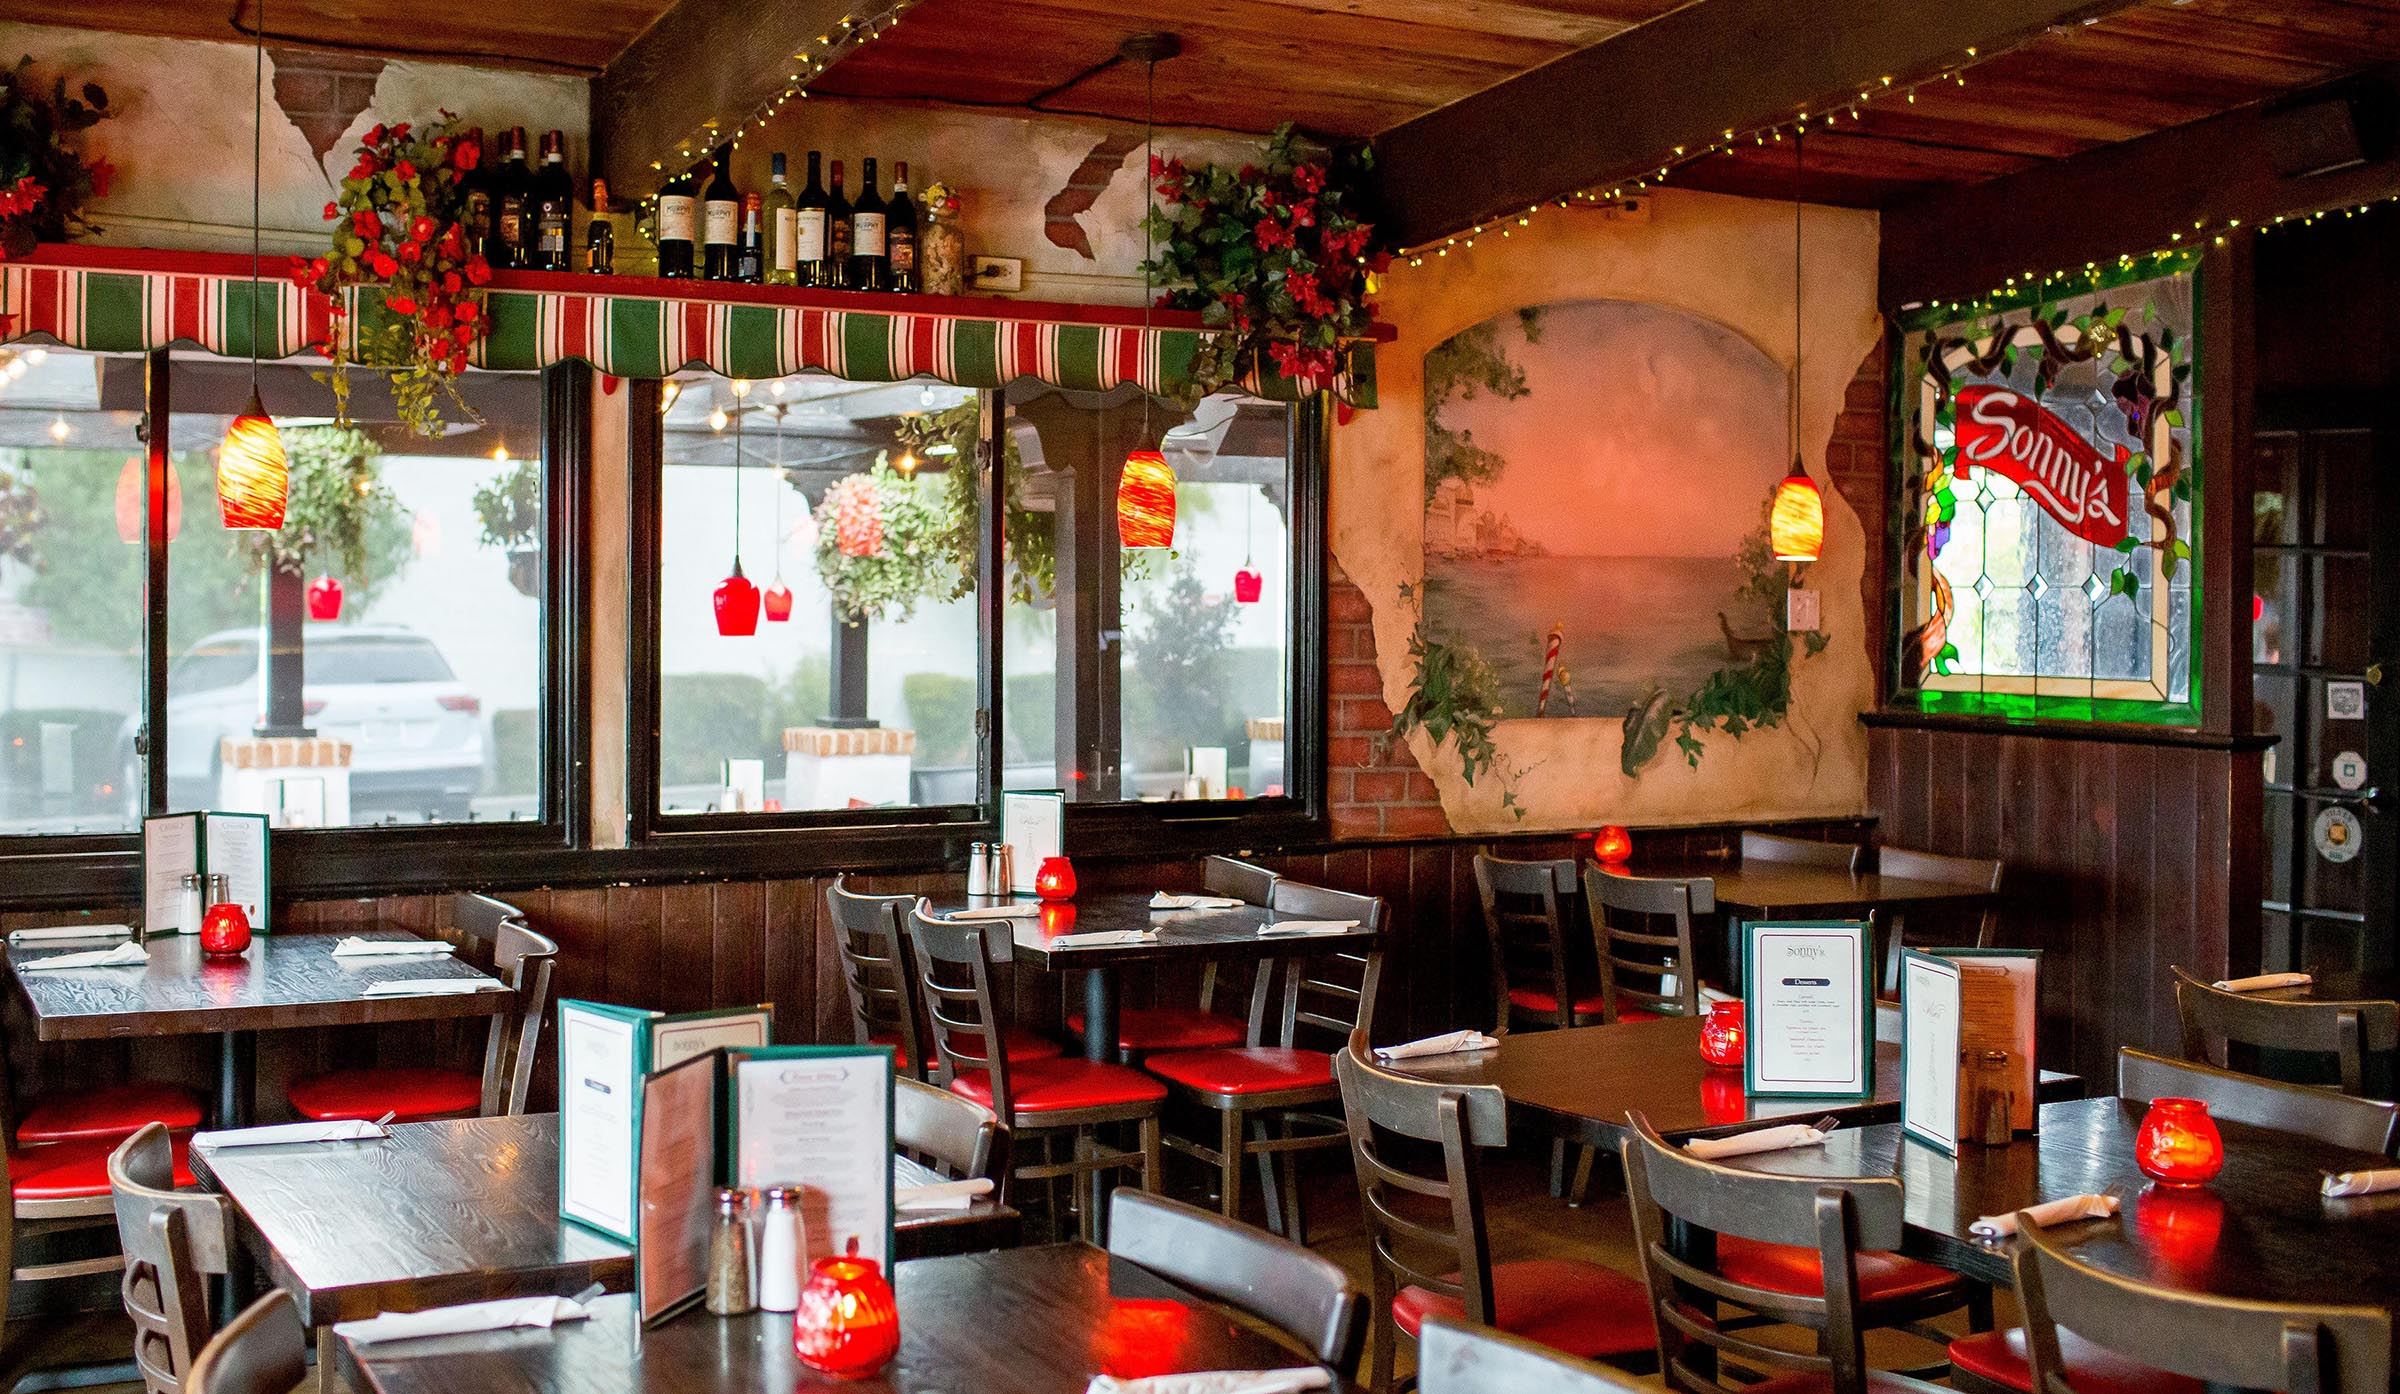 Inside Sonny's. Warm and inviting. Classic rustic Italian decor with twinkle lights and candles.